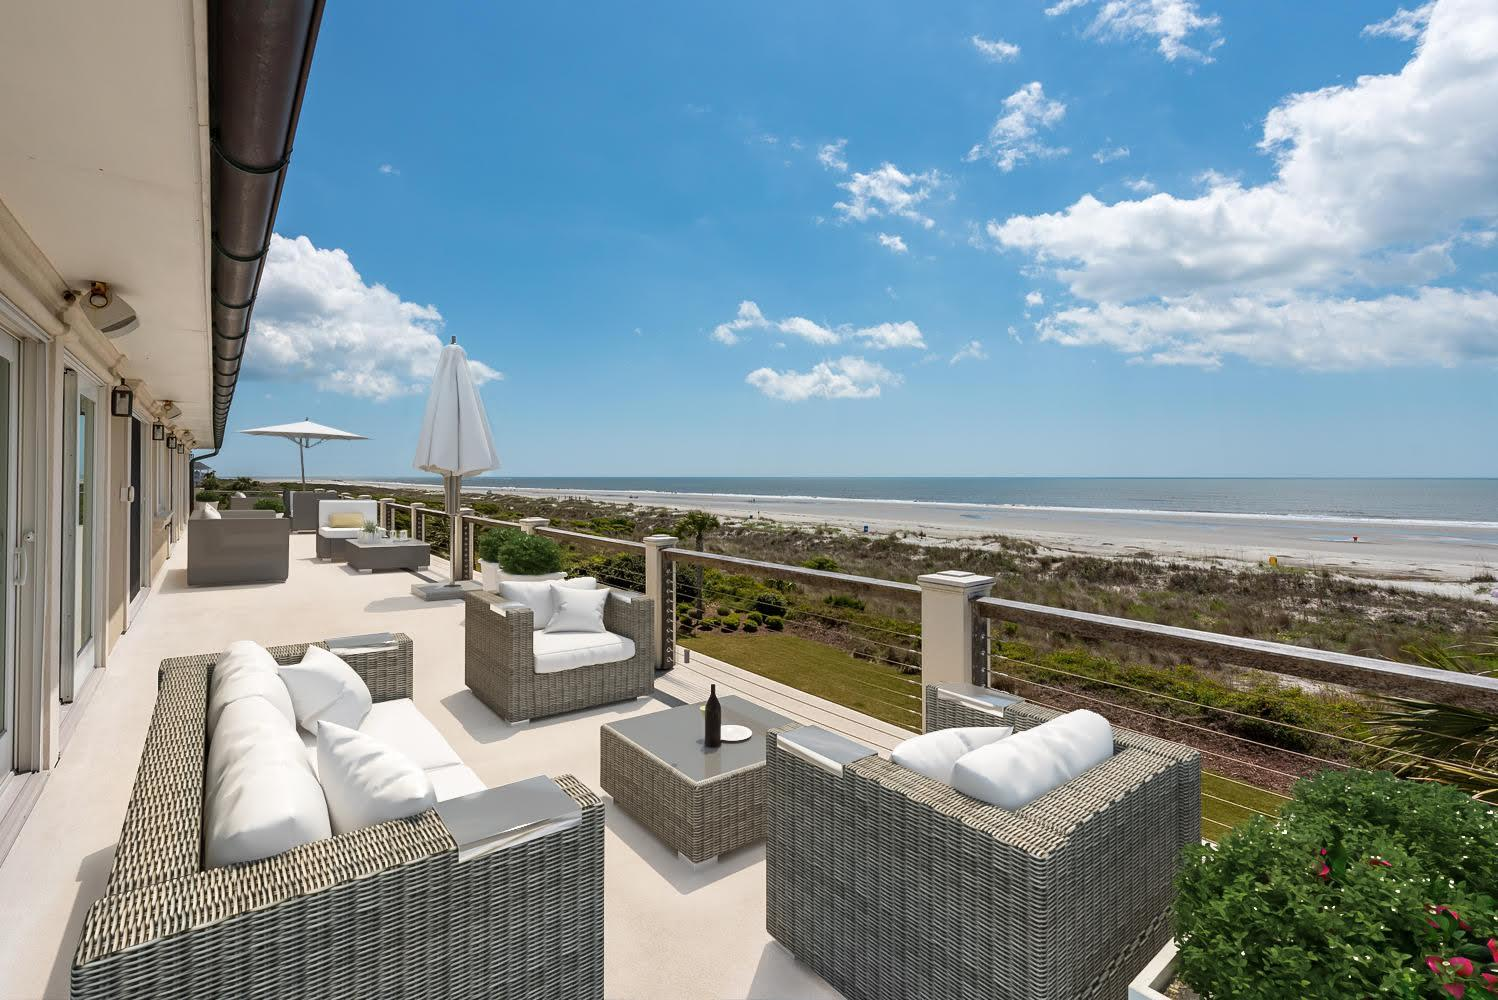 Isle of Palms Homes For Sale - 2 50th, Isle of Palms, SC - 50